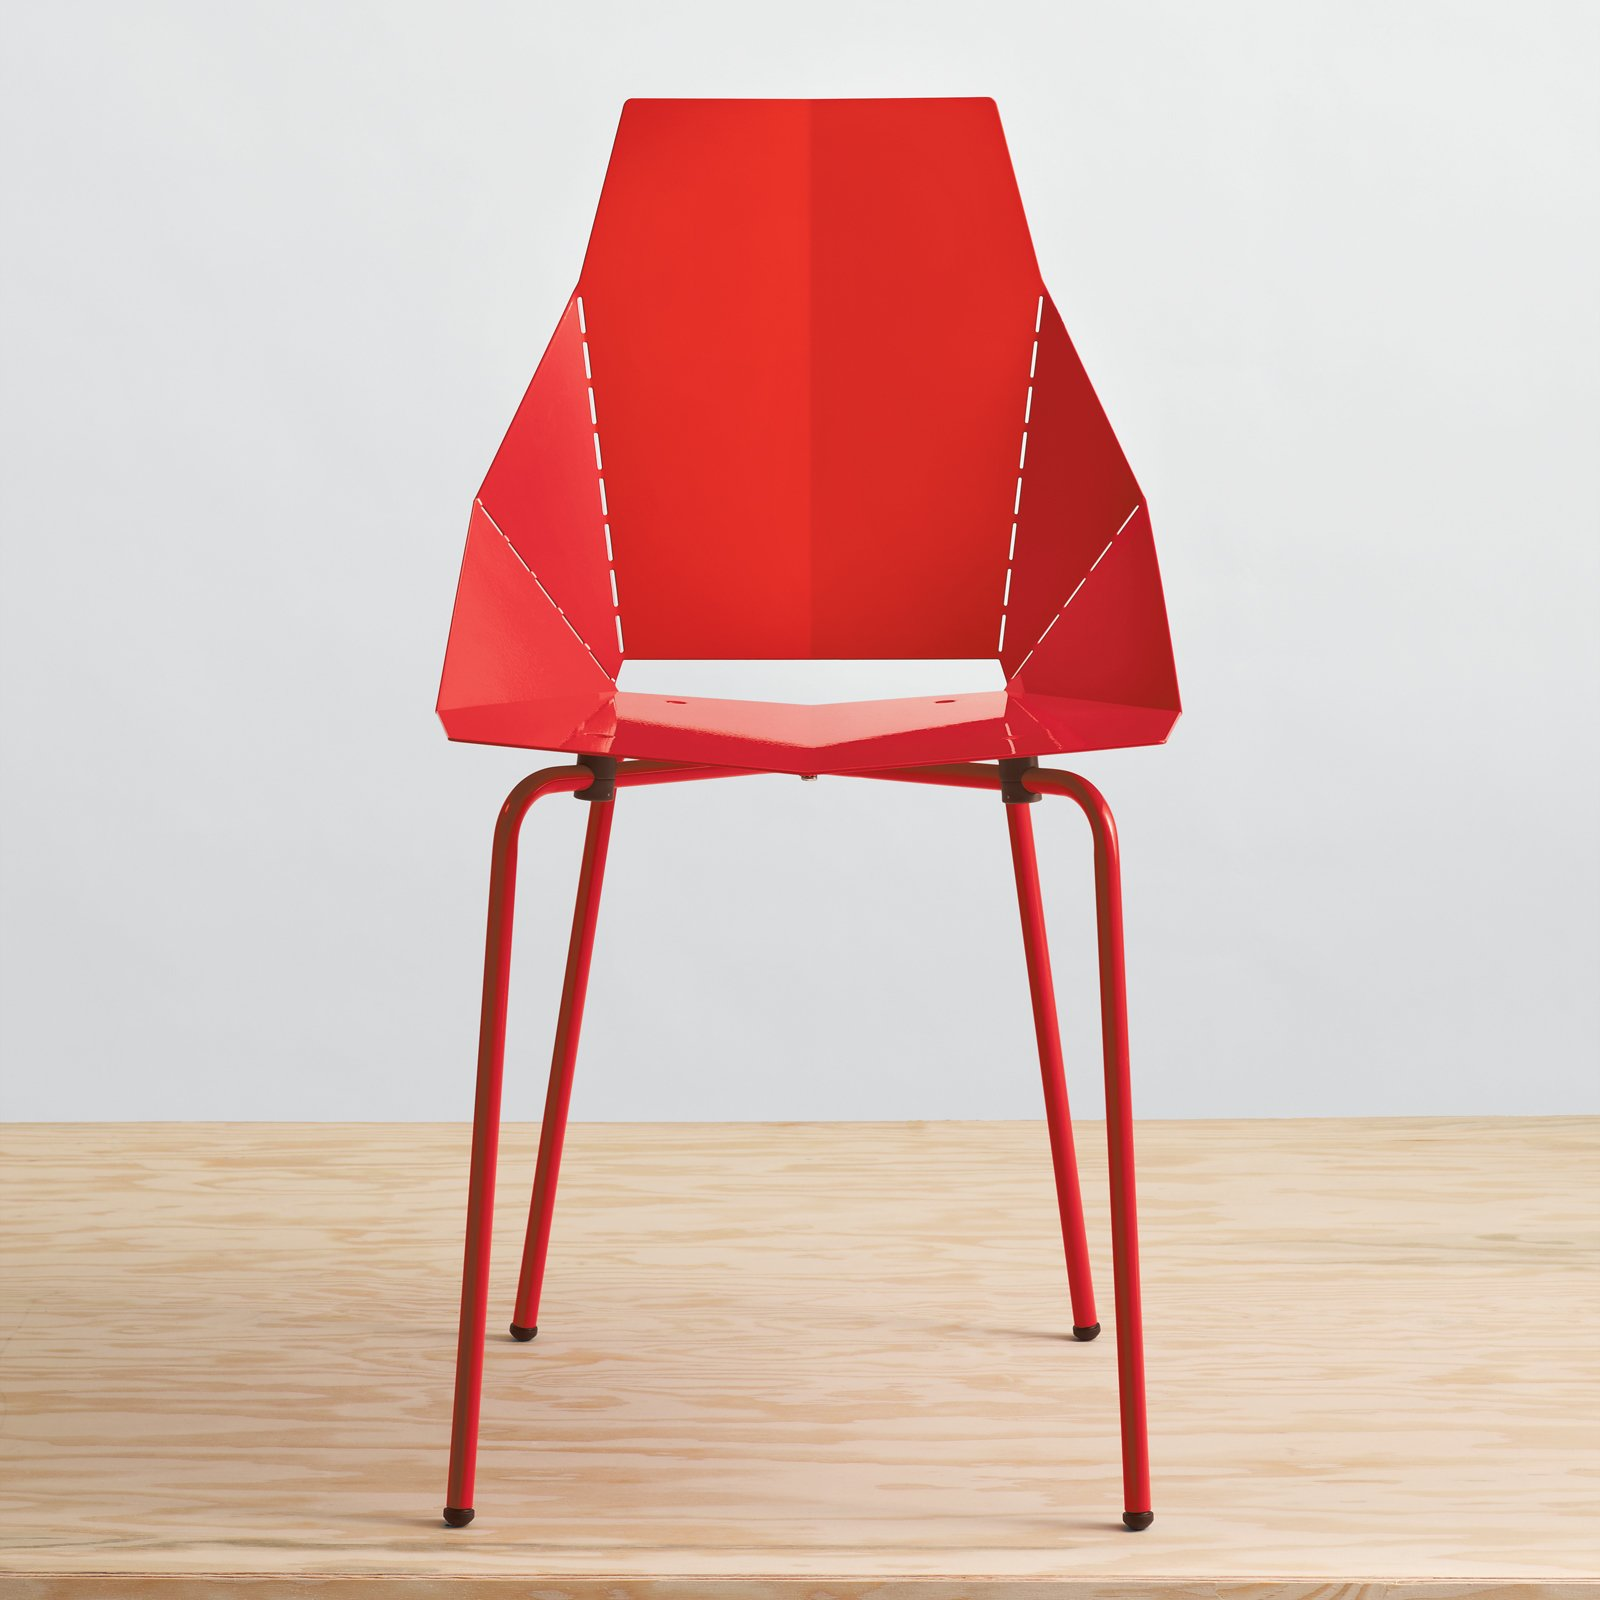 90mm  Blu Dot Spotted by Blu Dot from Take a Seat: 8 Dashing Modern Chairs